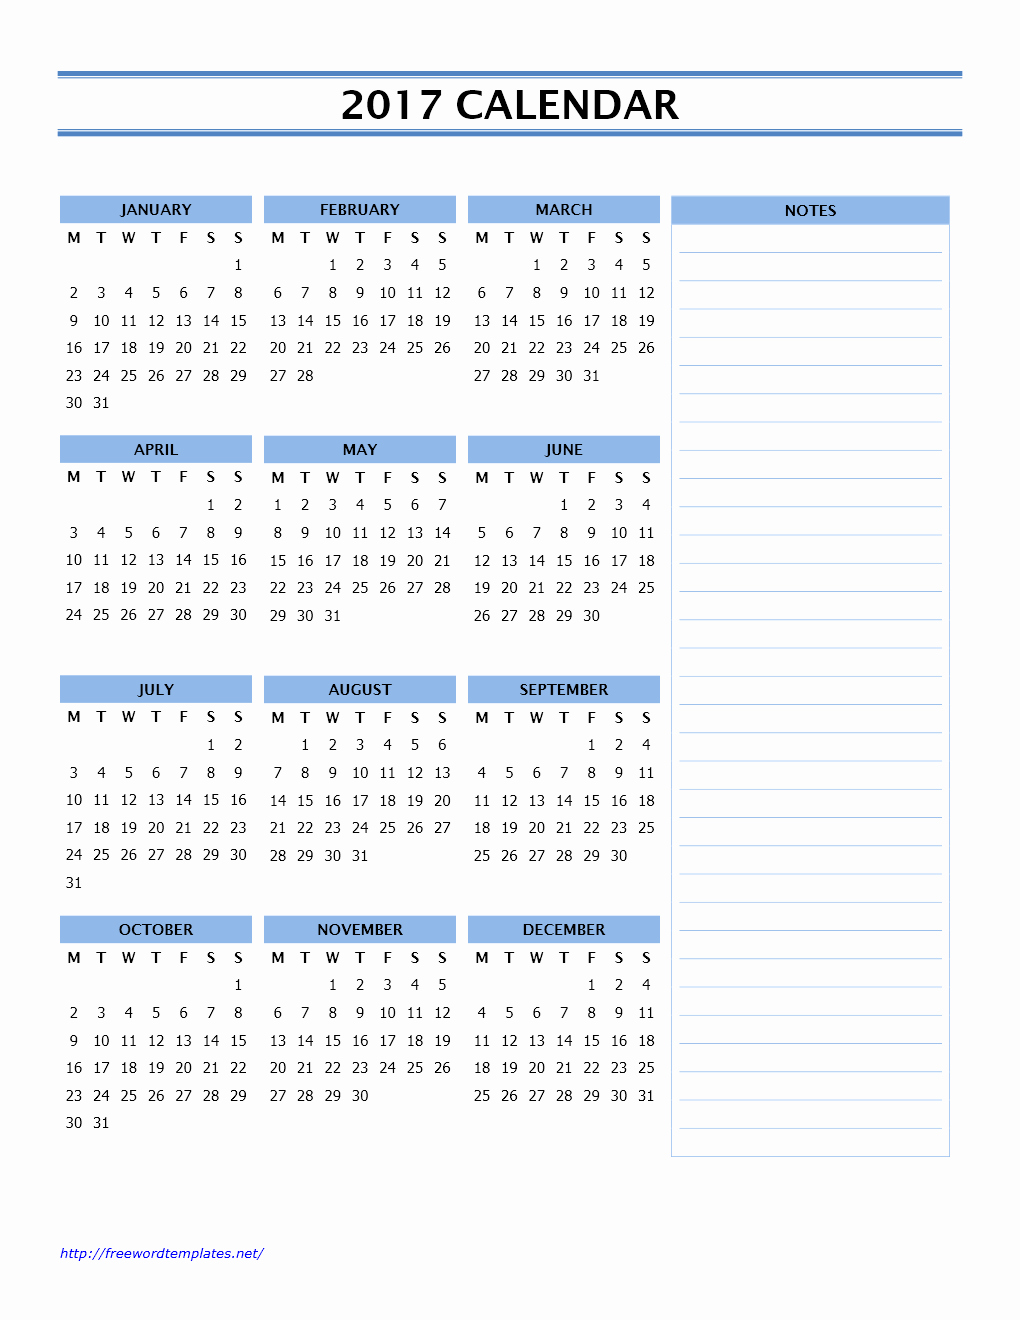 2017 Calendar Template with Notes Awesome 2017 Calendar Templates